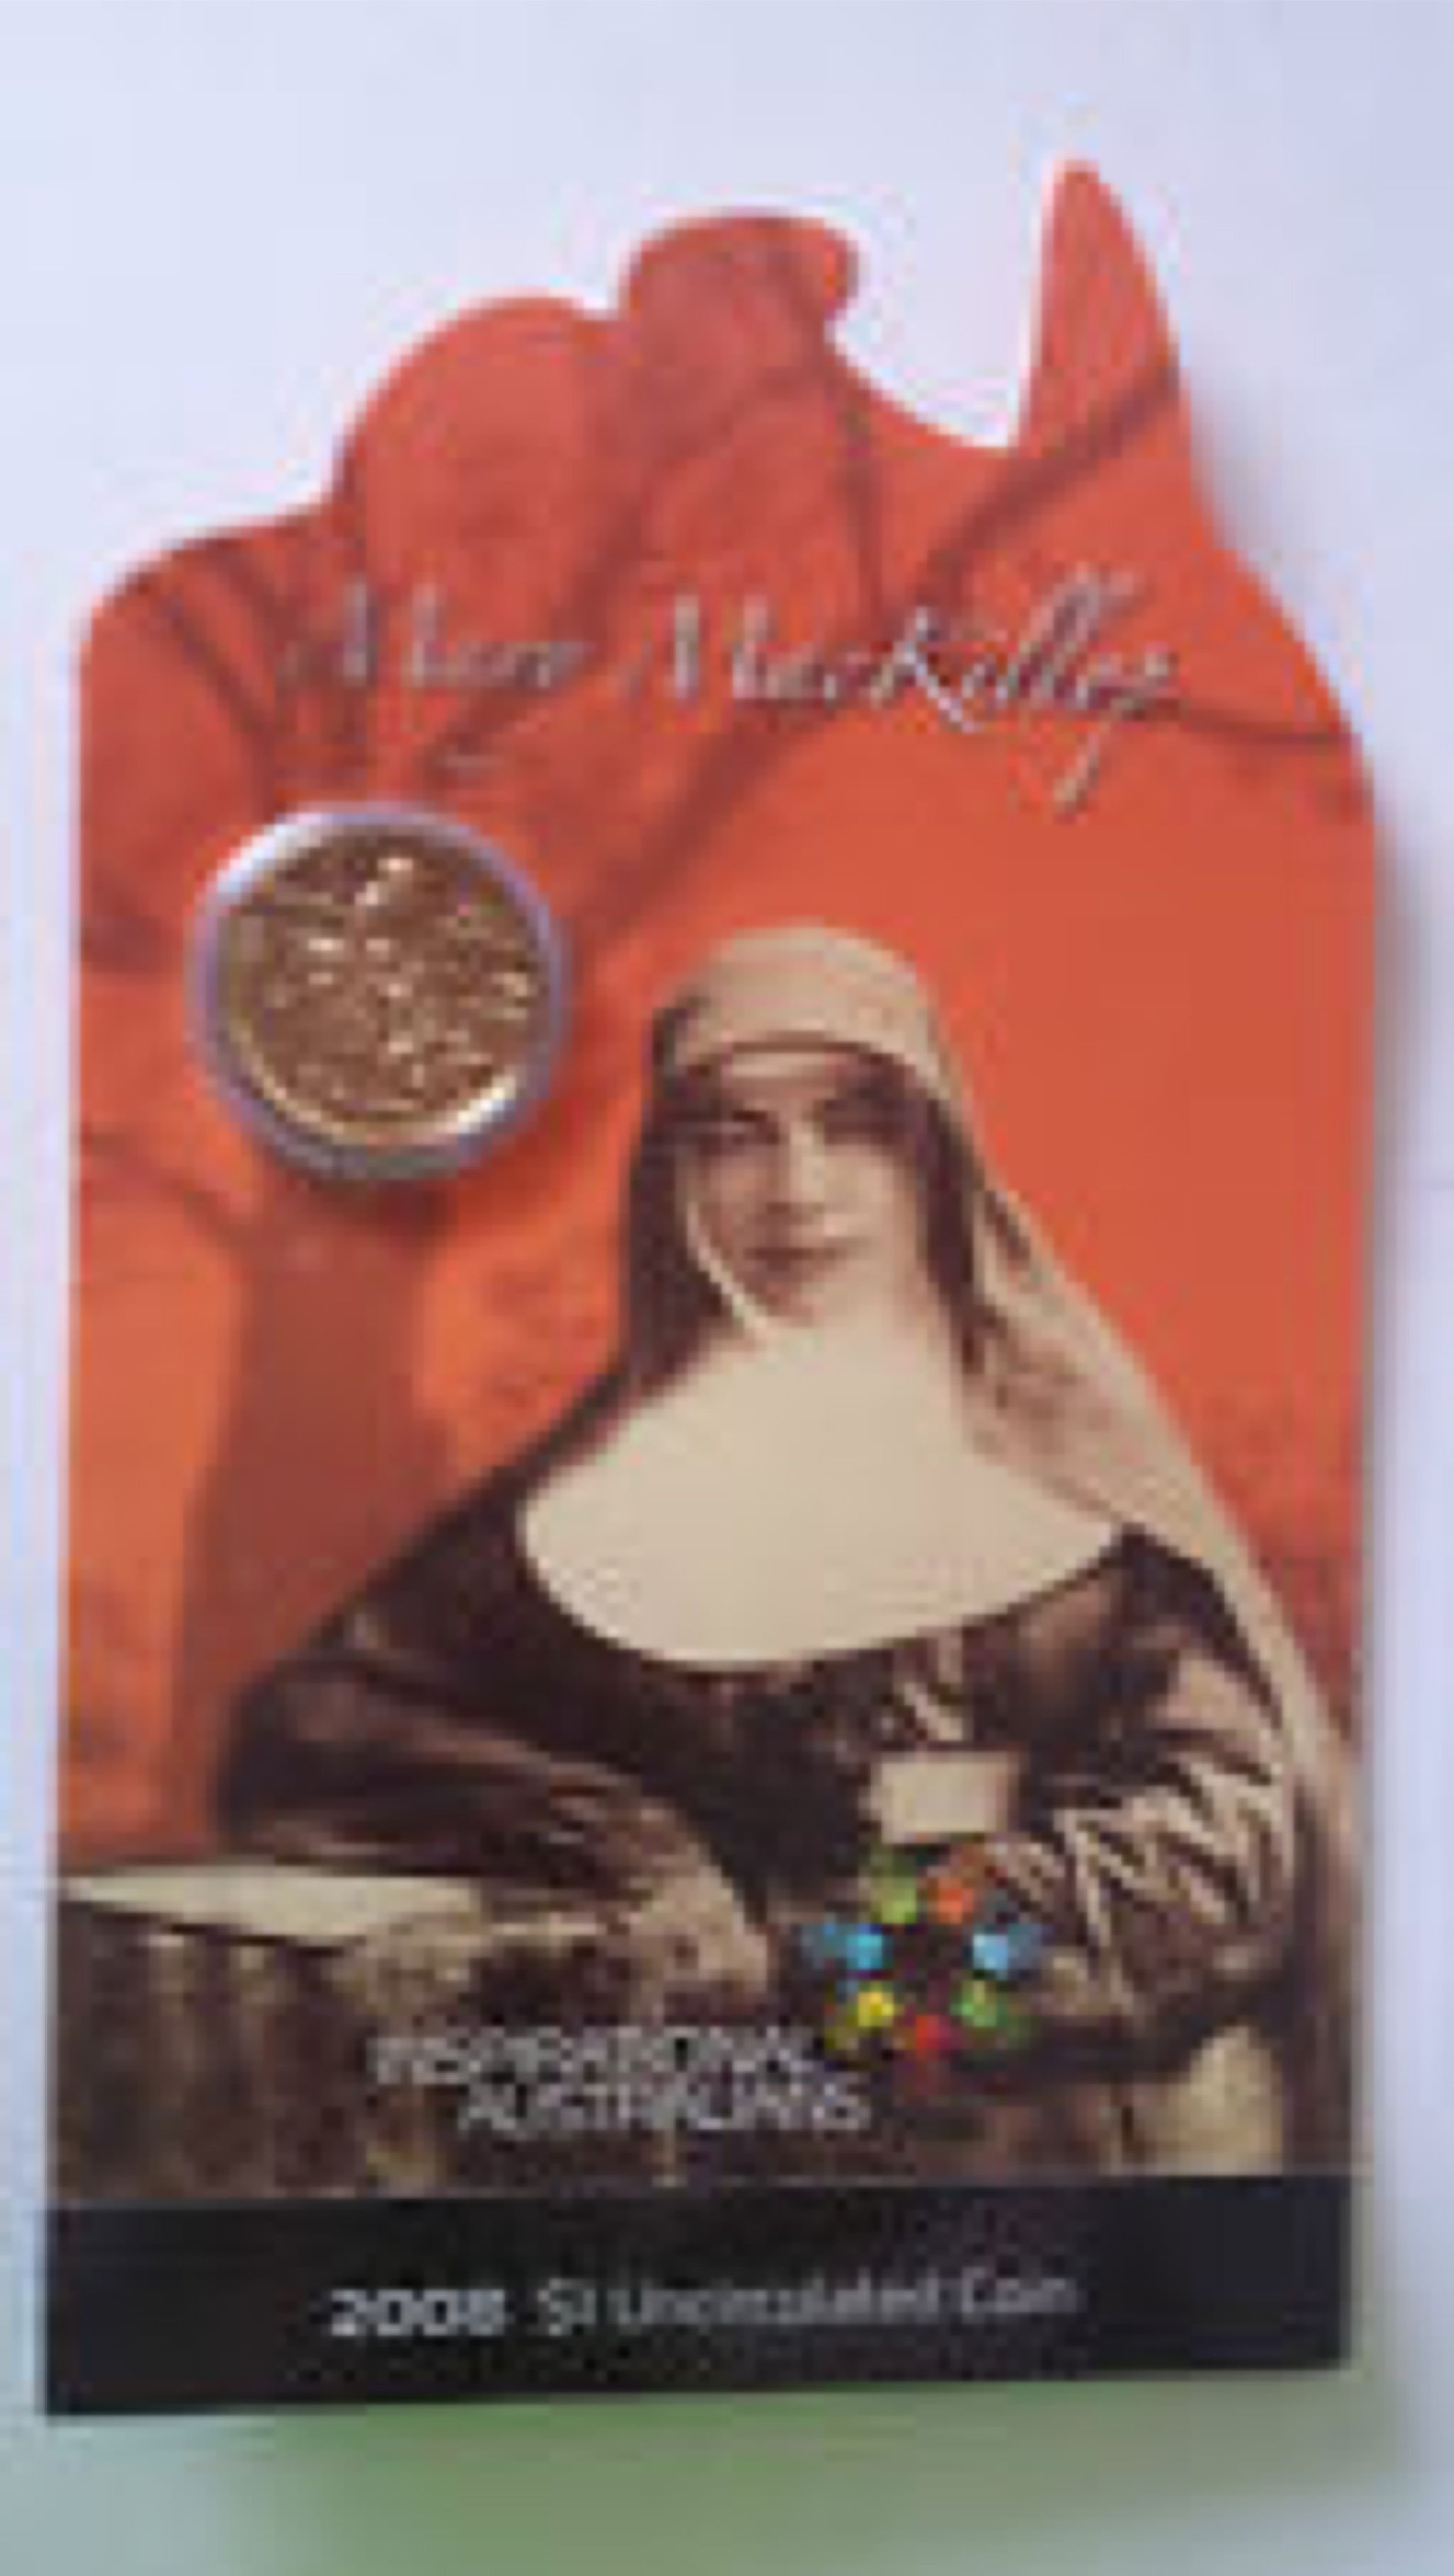 2008 $1 Uncirculated Inspirational Australians - Mary MacKillop Coin - $1 (2008) front image (front cover)